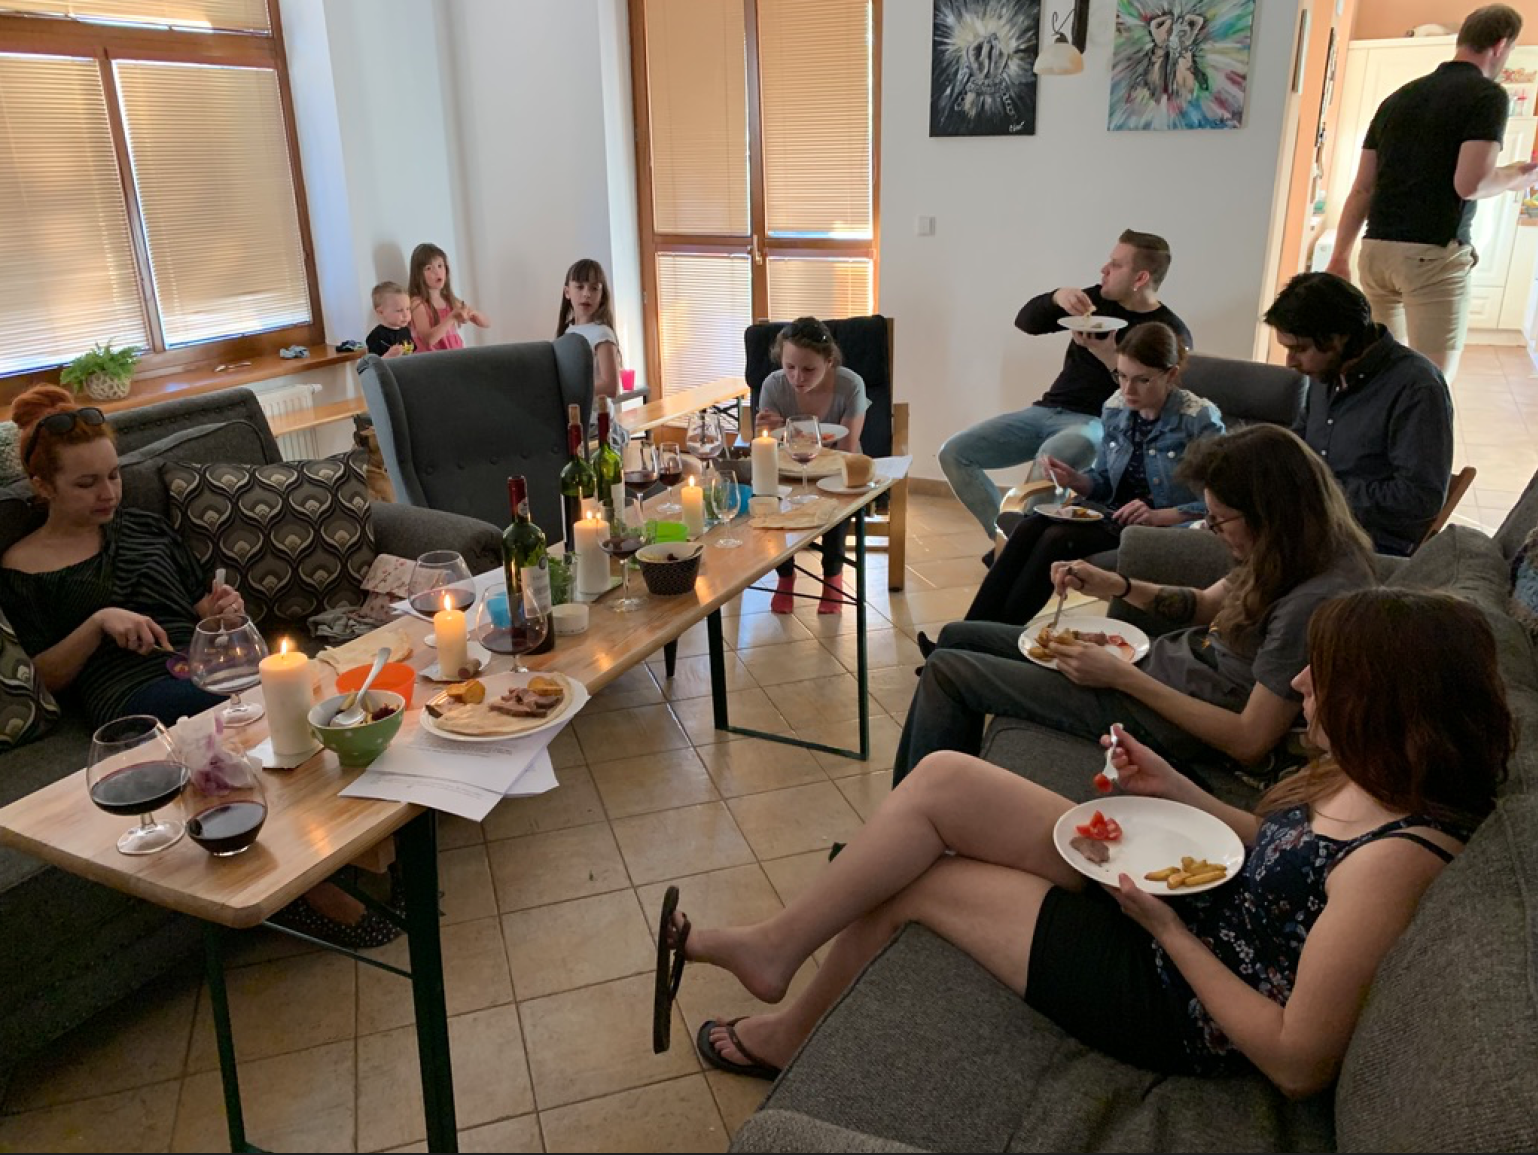 We had a Gospel focused Passover meal for Good Friday. It's amazing to see how the details of the ancient celebration meal points to Jesus in every way!